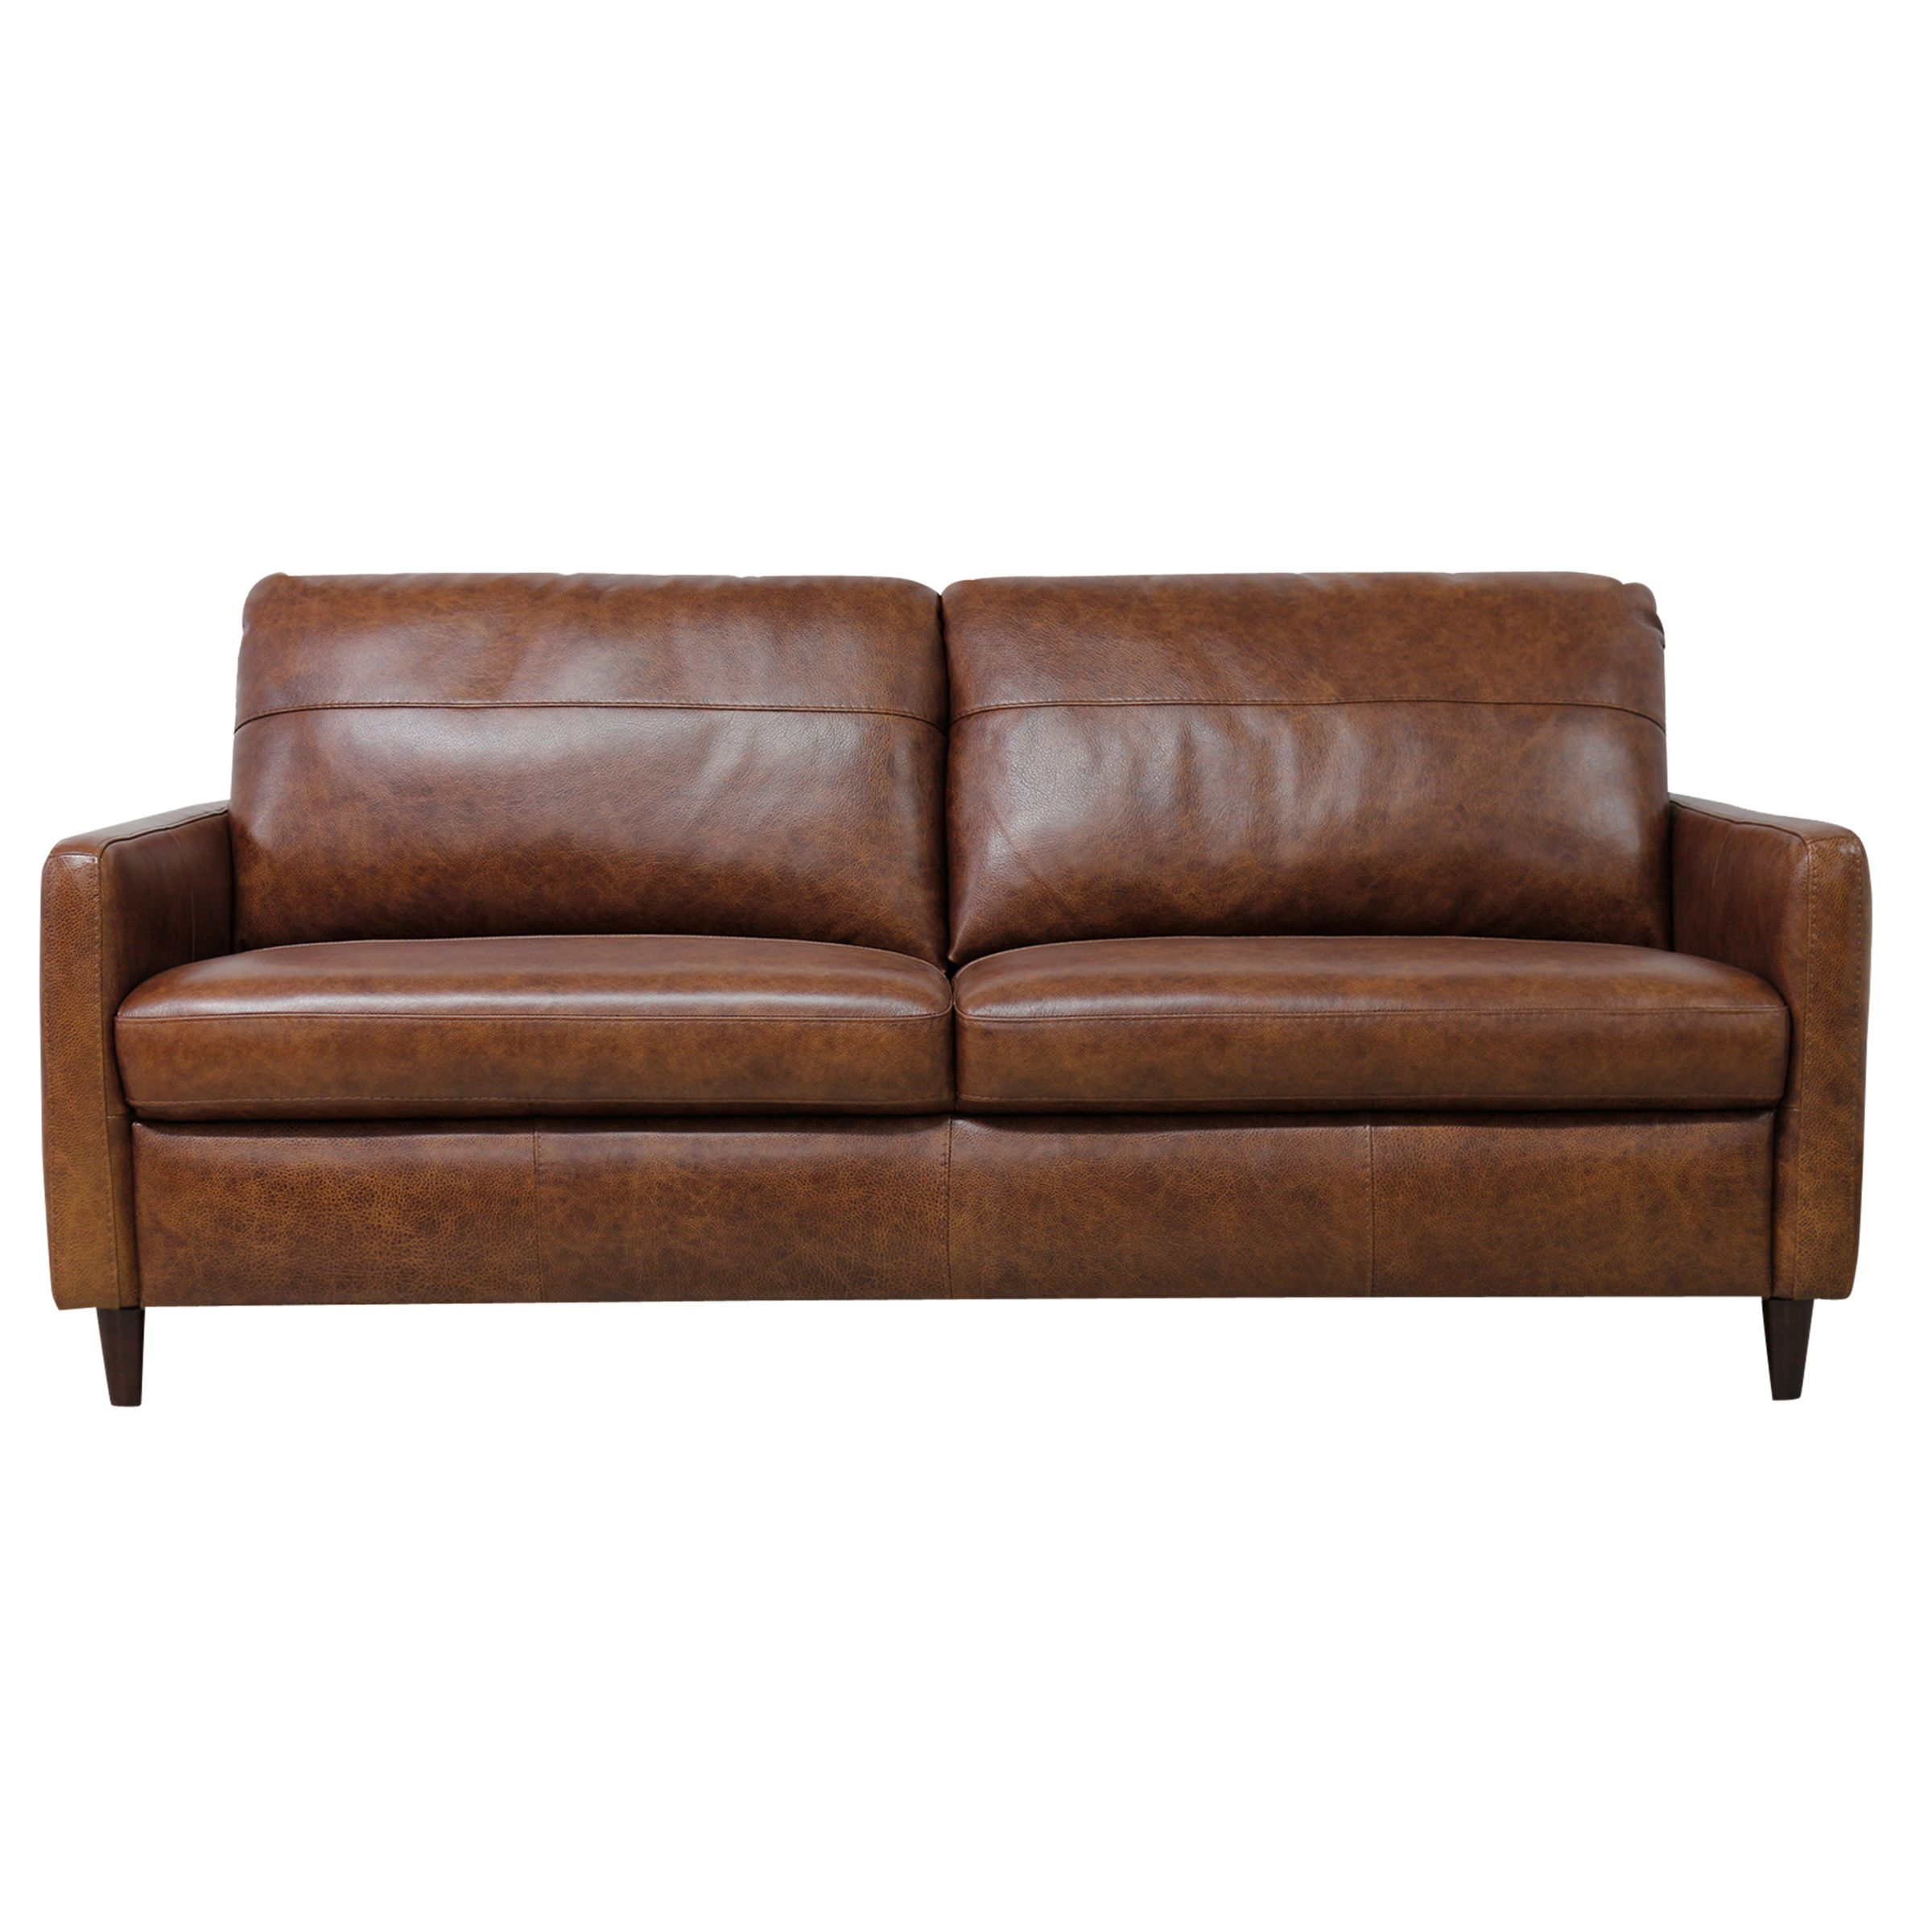 John Lewis Dalston Leather Large 3 Seater Sofa, Earth Bronx